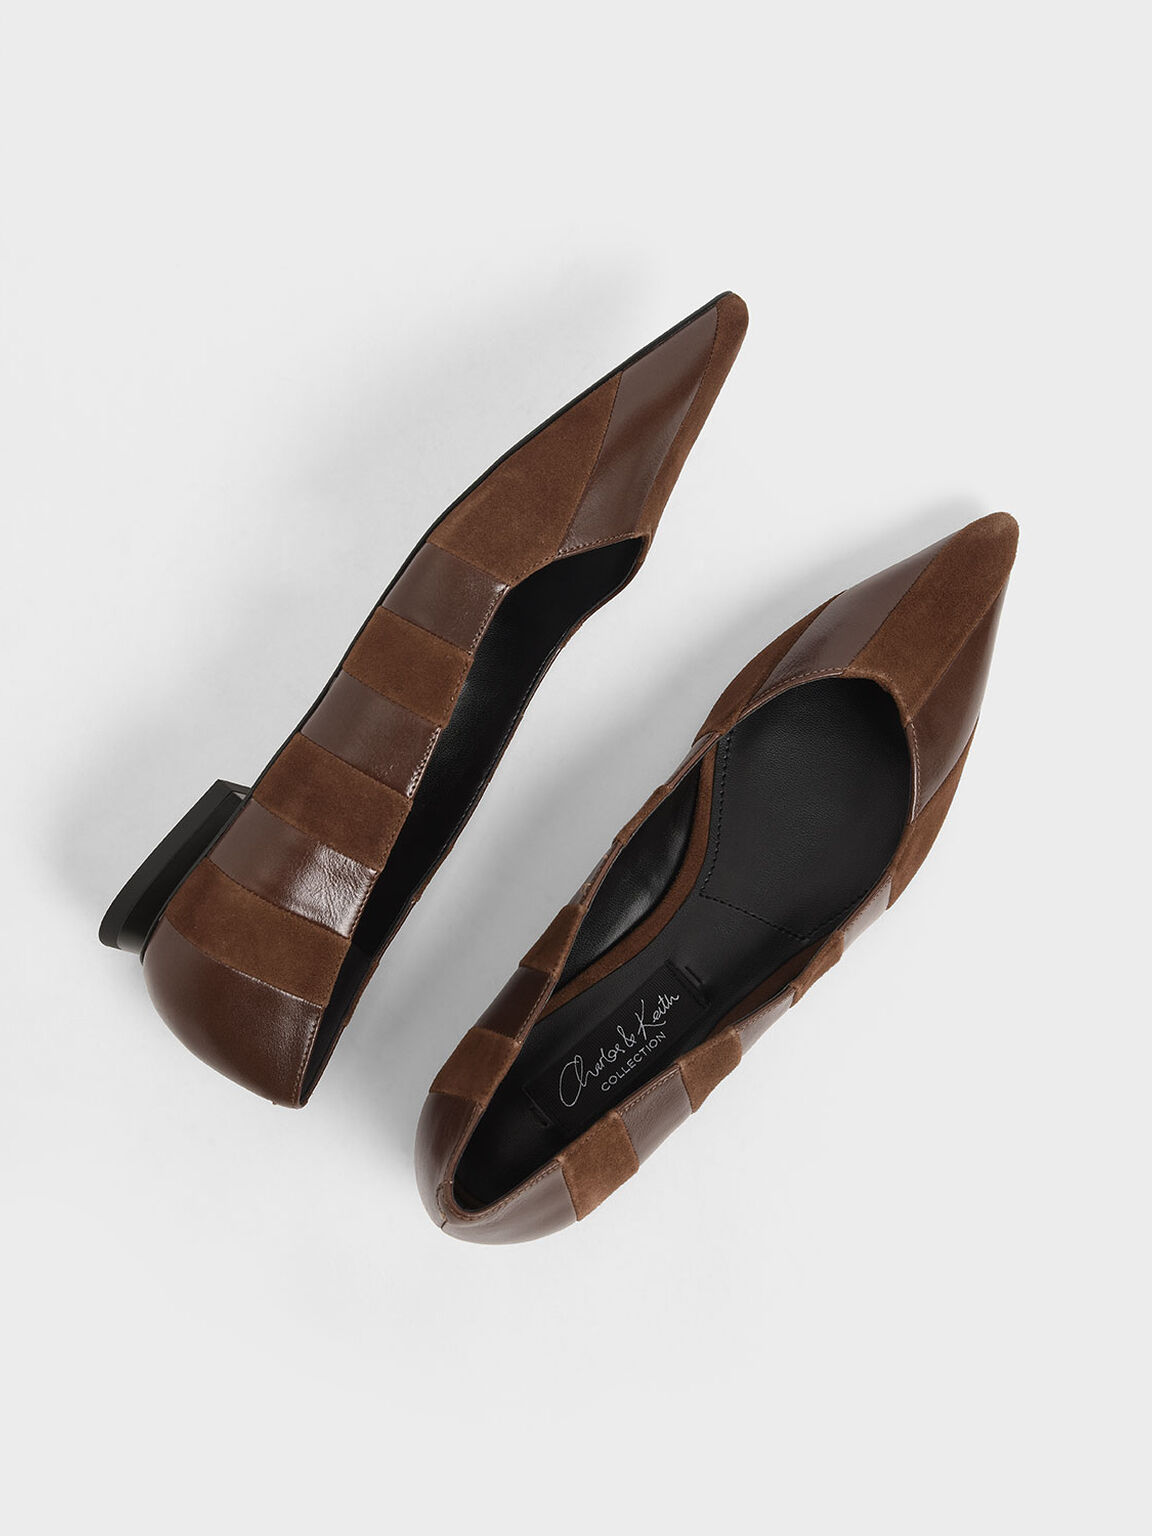 Kid Suede & Wrinkled Leather Striped Ballerina Flats, Cognac, hi-res